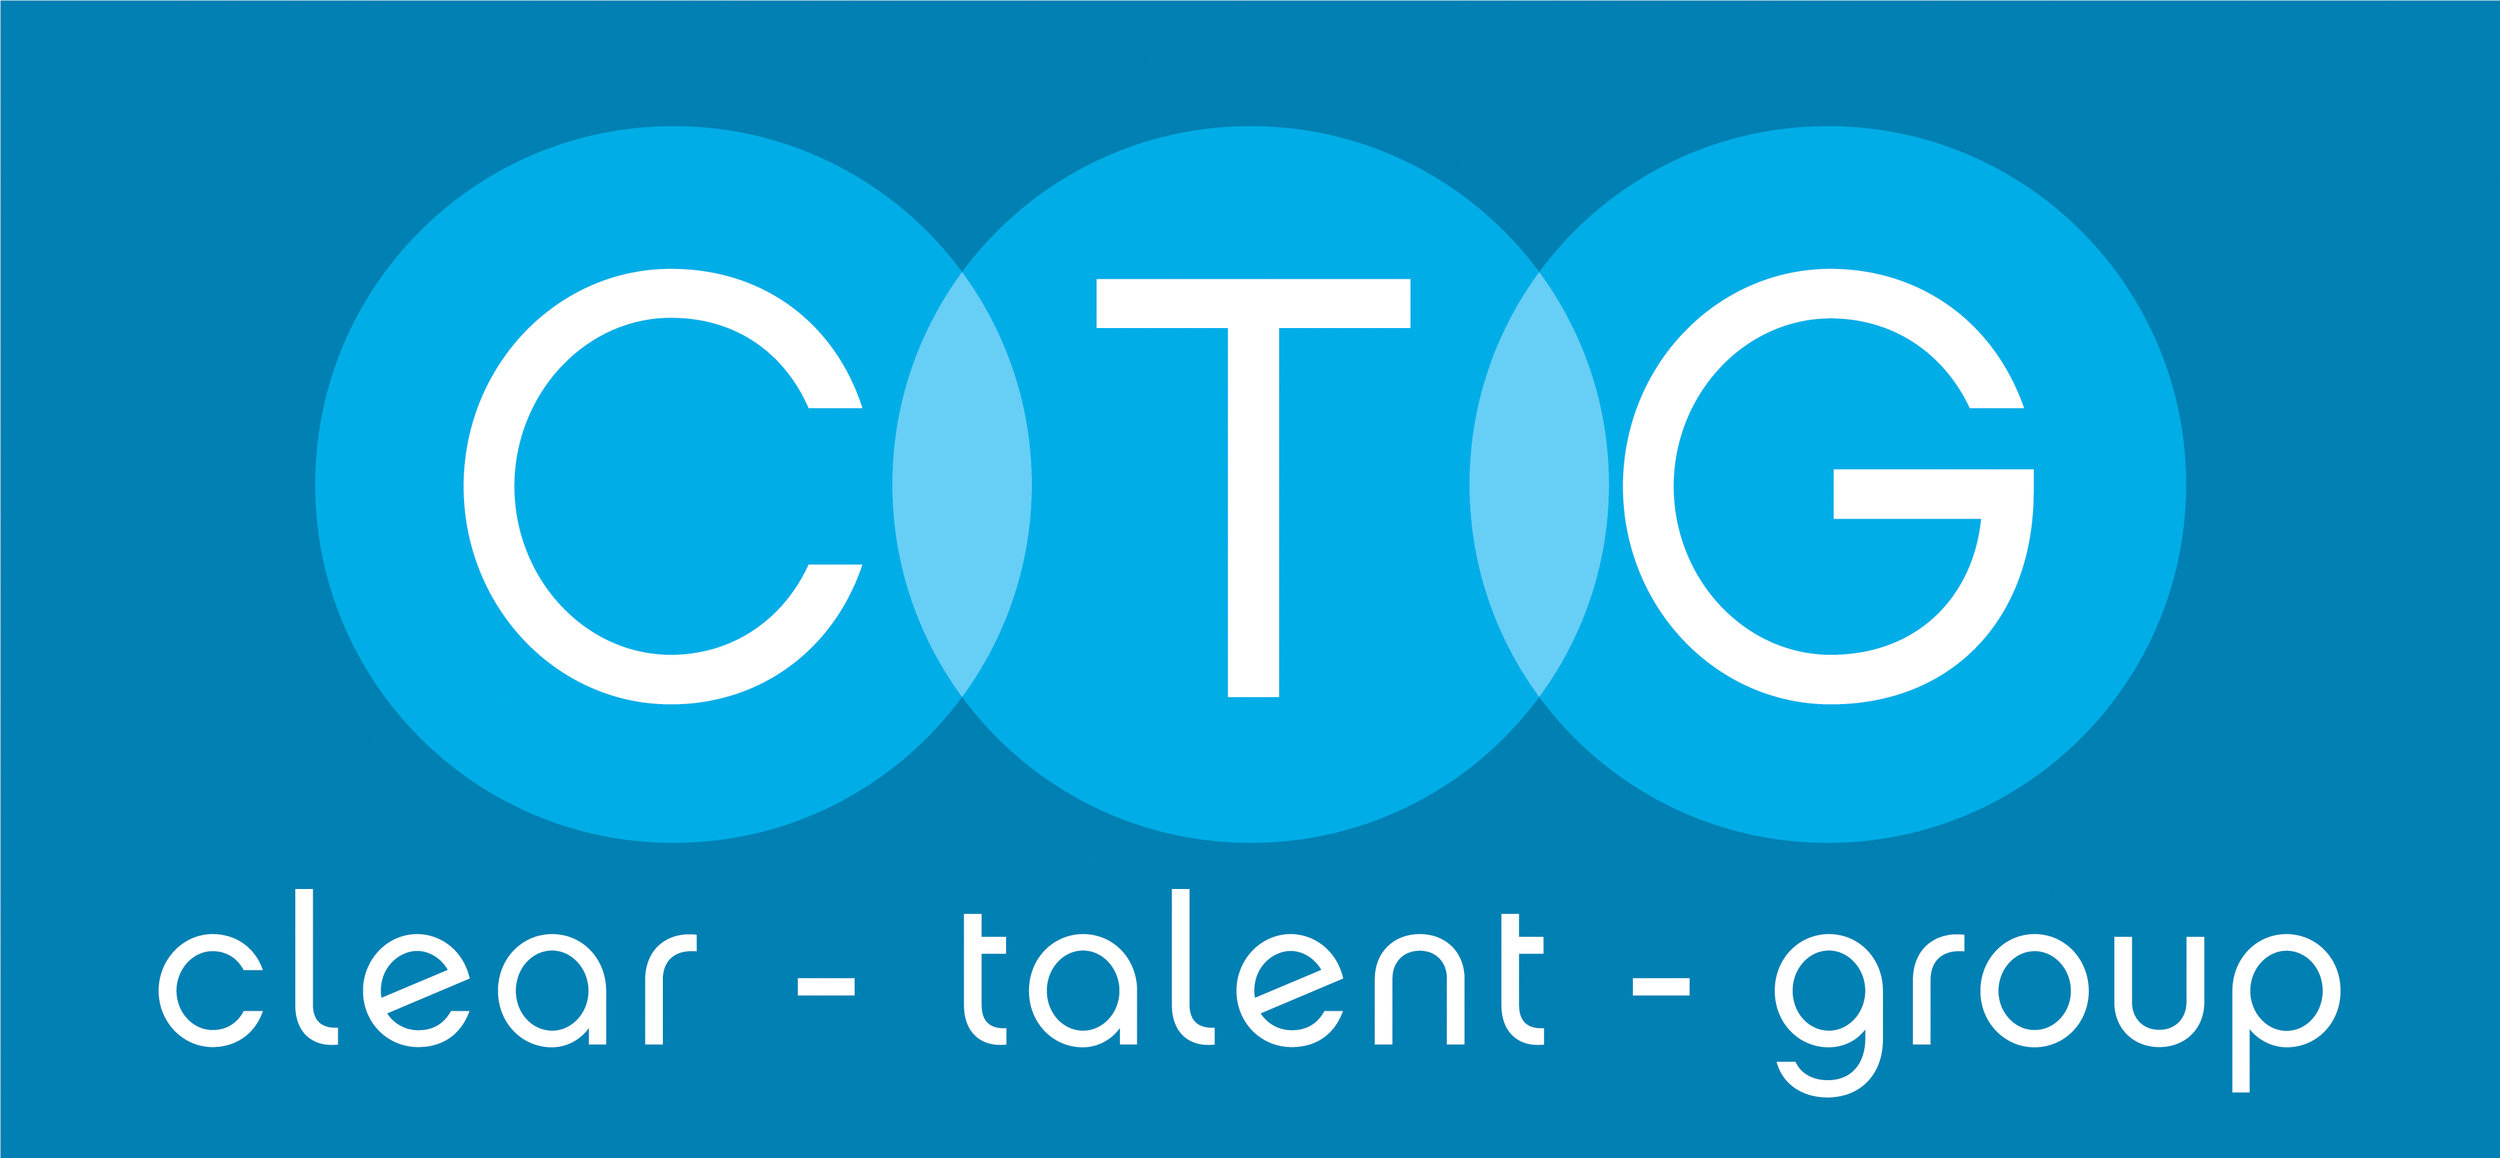 Clear_Talent_Group.jpg